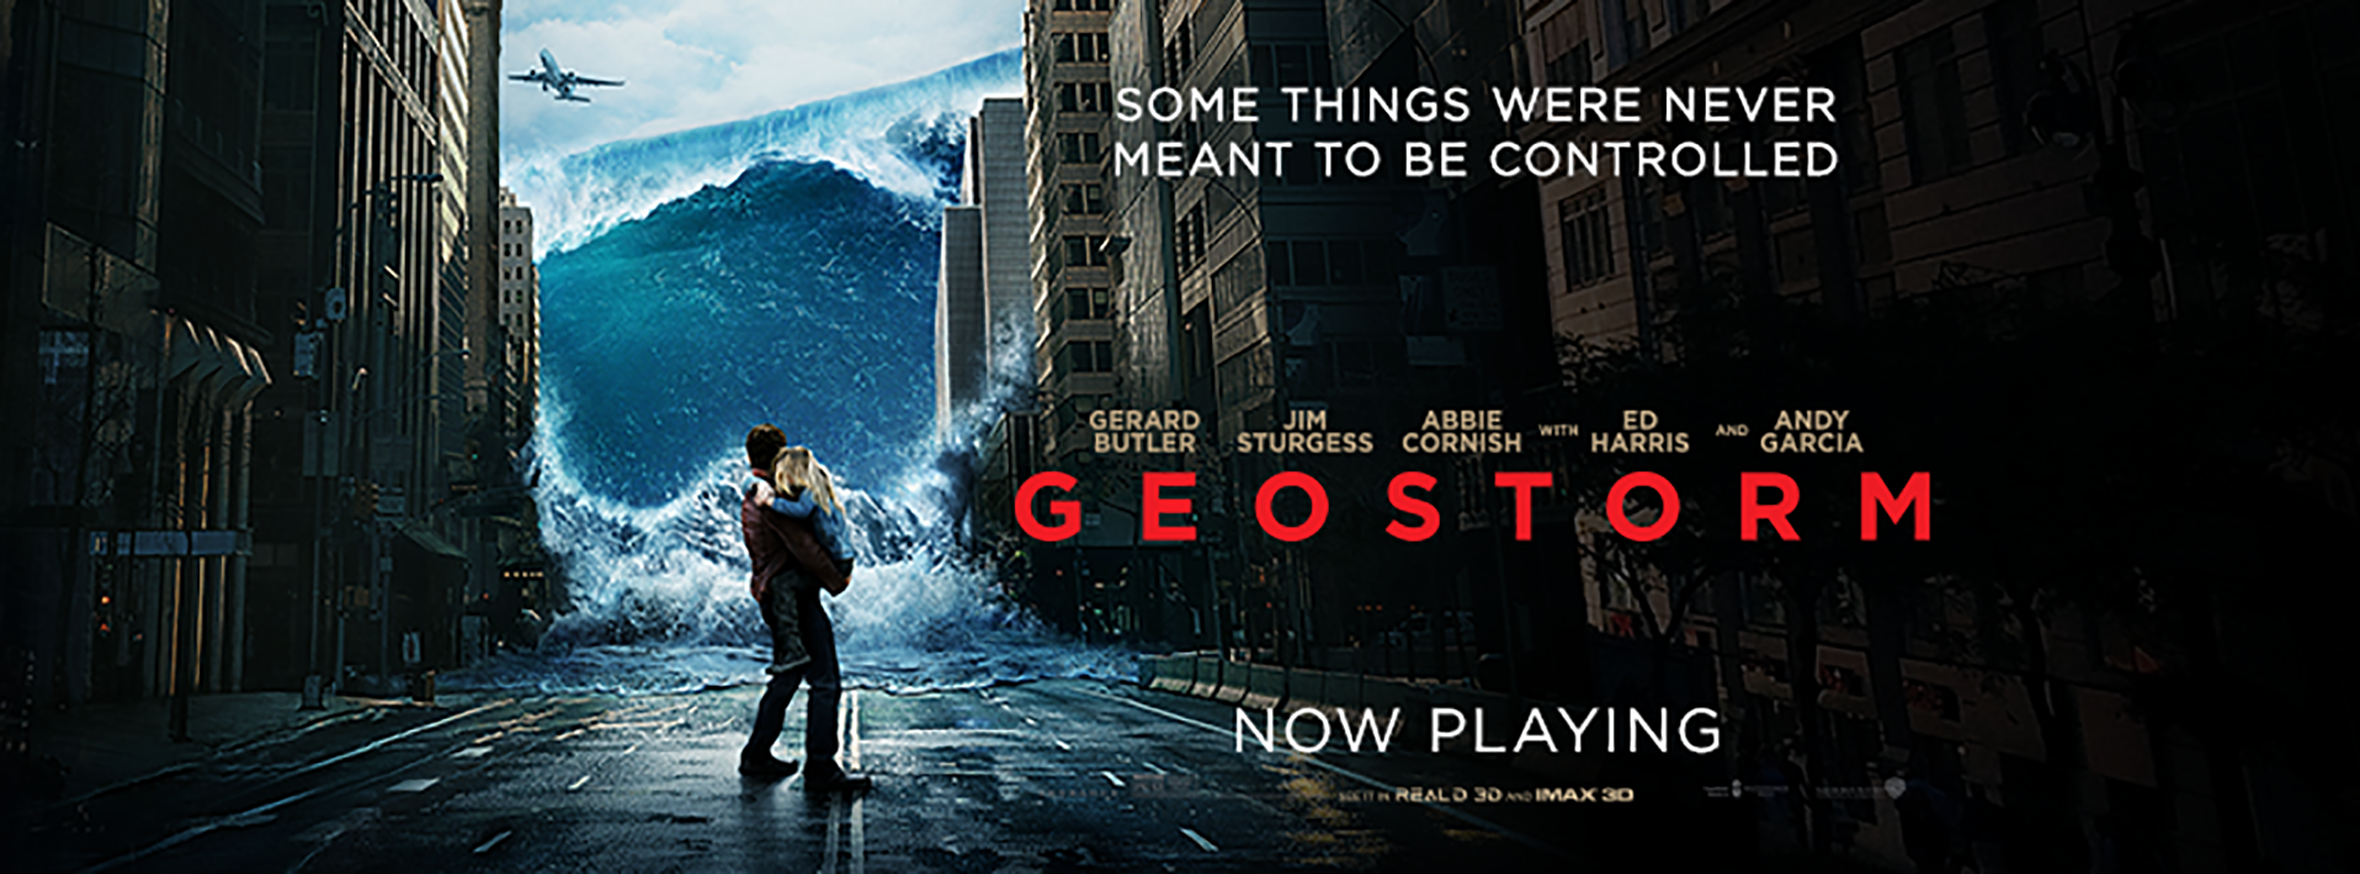 Face Off Movie Poster Geostorm: The Movie | ...